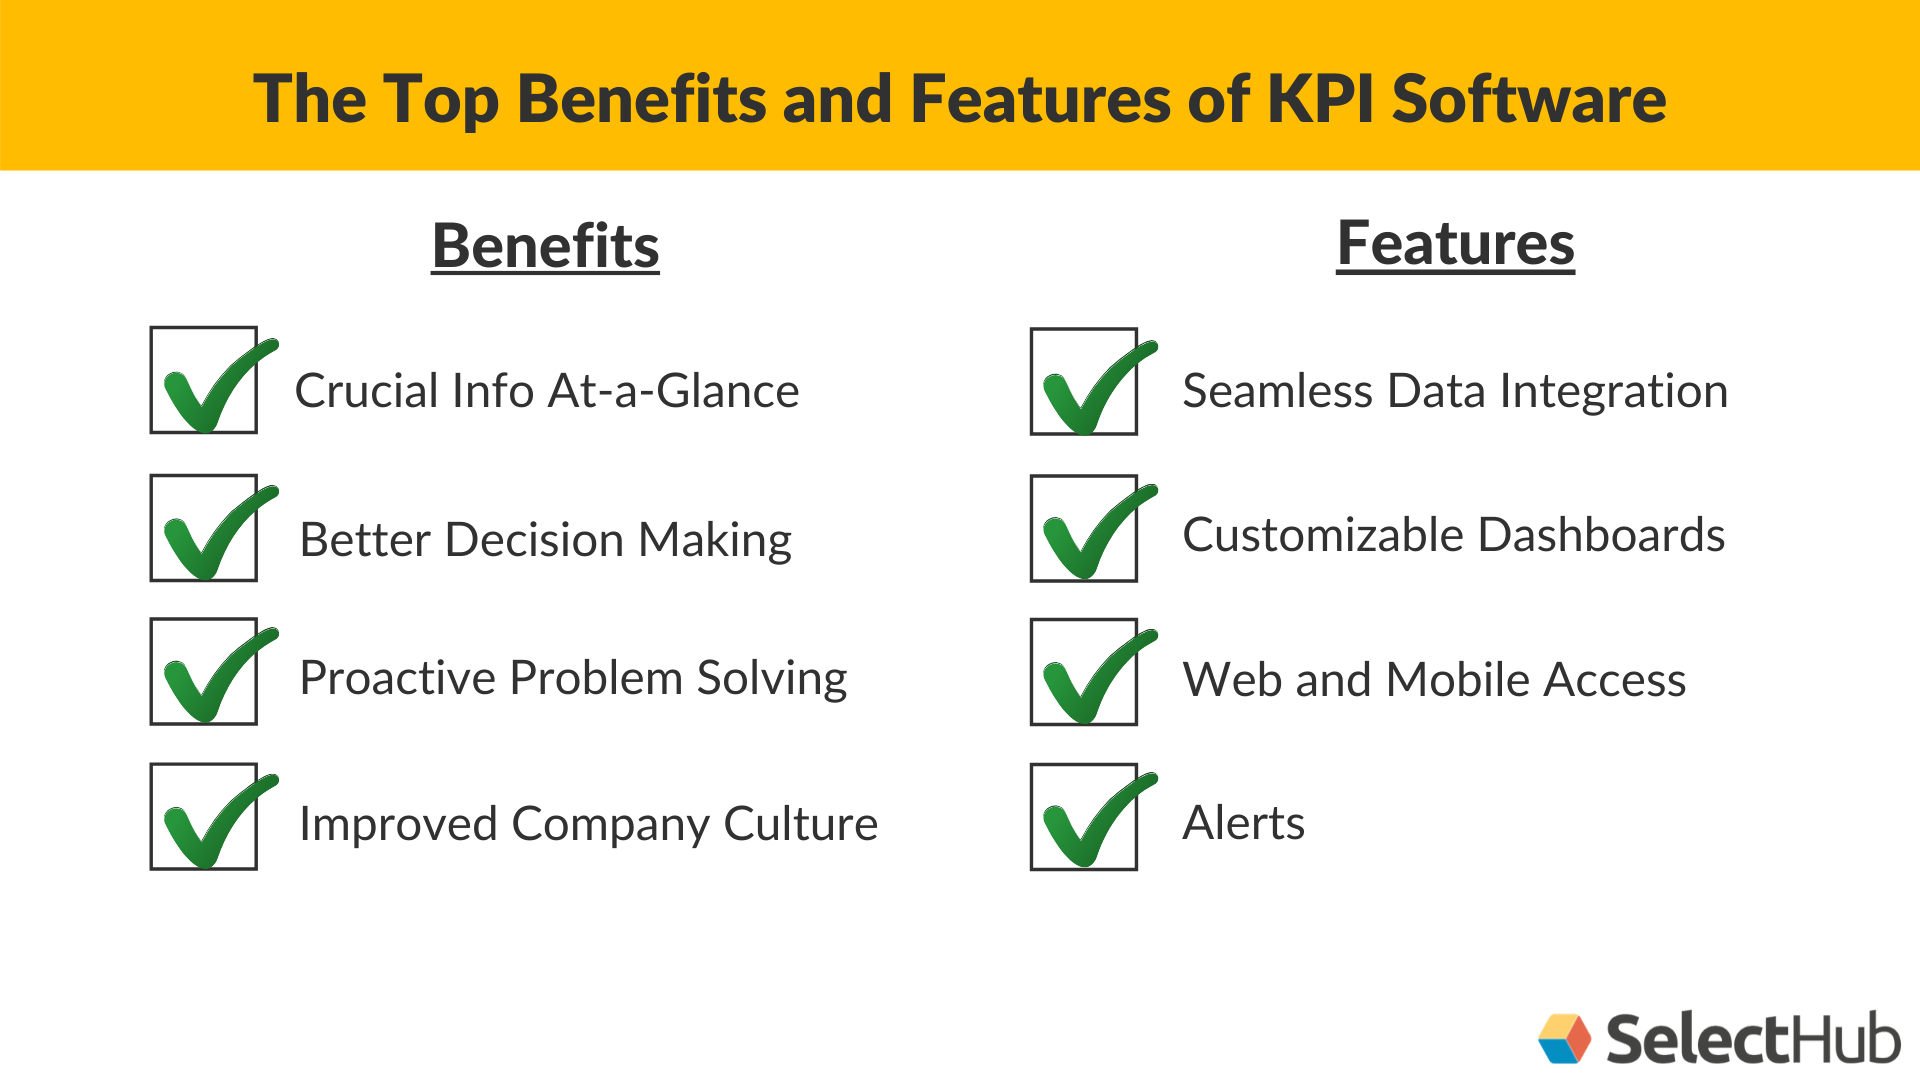 KPI Software Benefits and Features